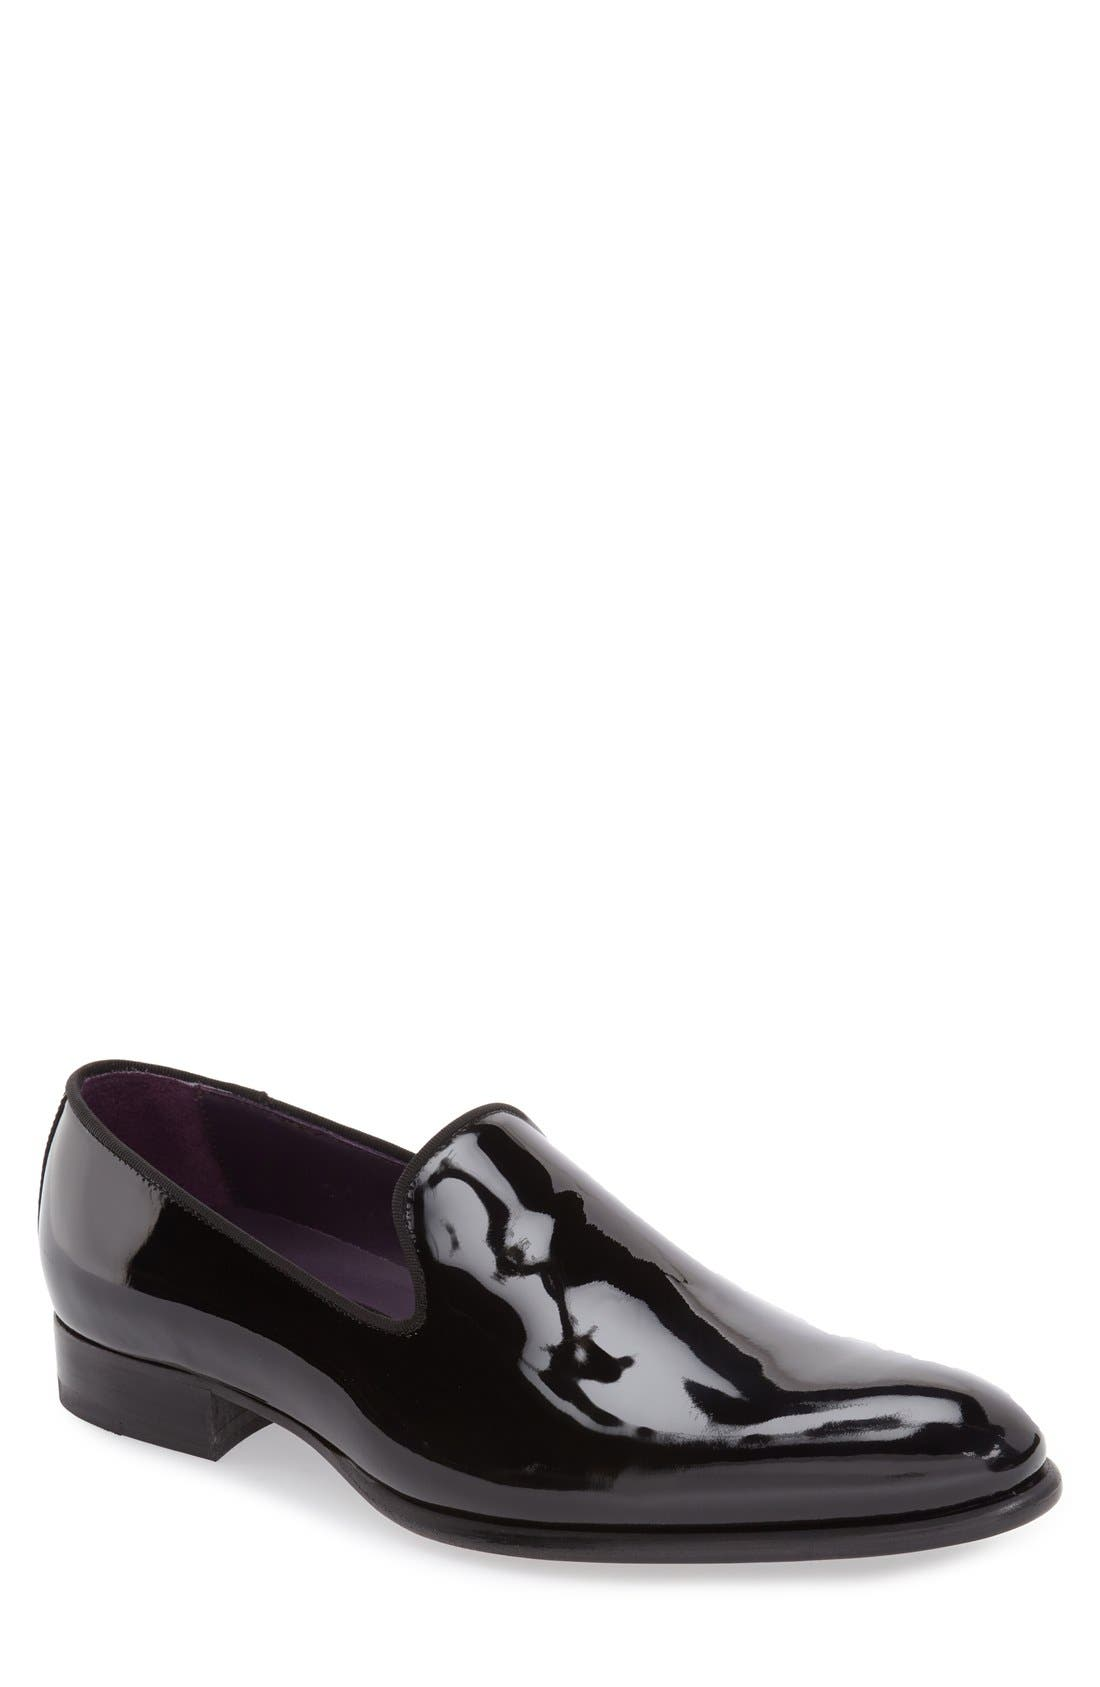 Alternate Image 1 Selected - To Boot New York 'Delevan' Loafer (Men)